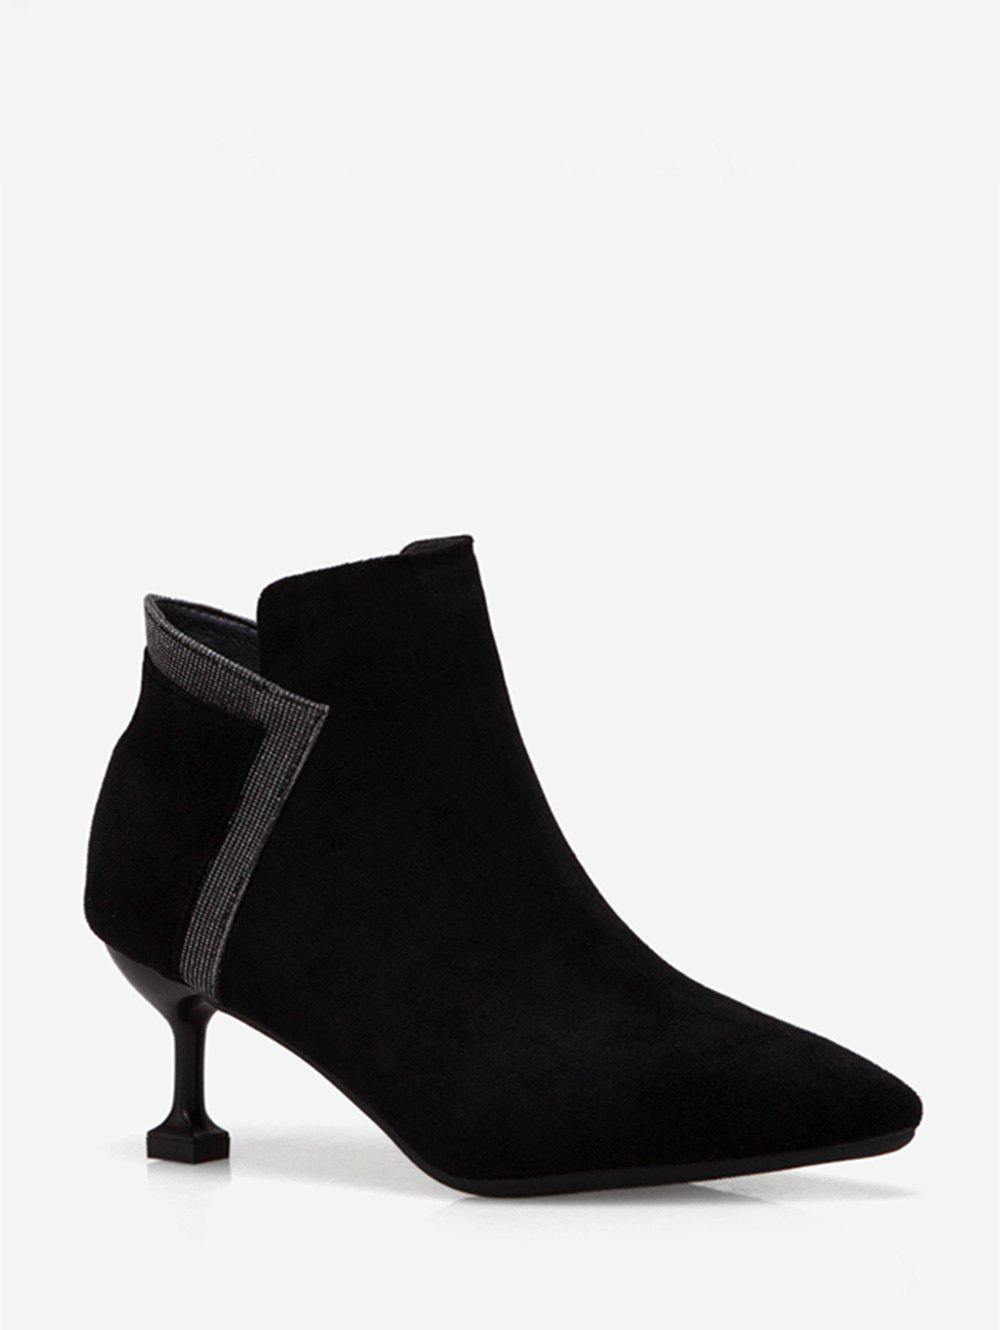 New Strange Heel Pointed Toe Patch Ankle Boots